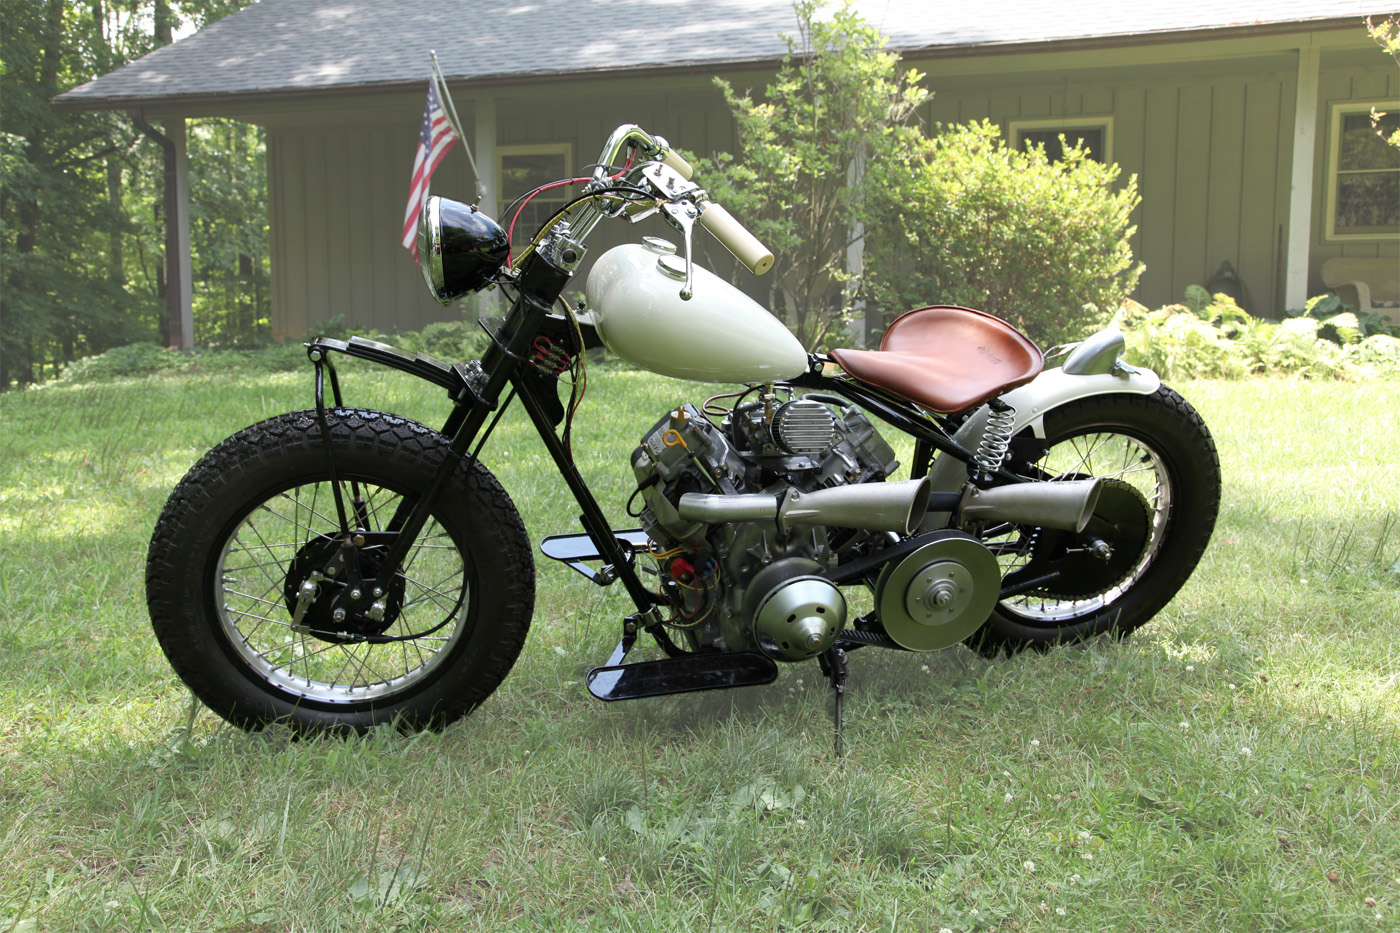 A Crazy Idea for an Engine Swap! - Motorcycle Forum